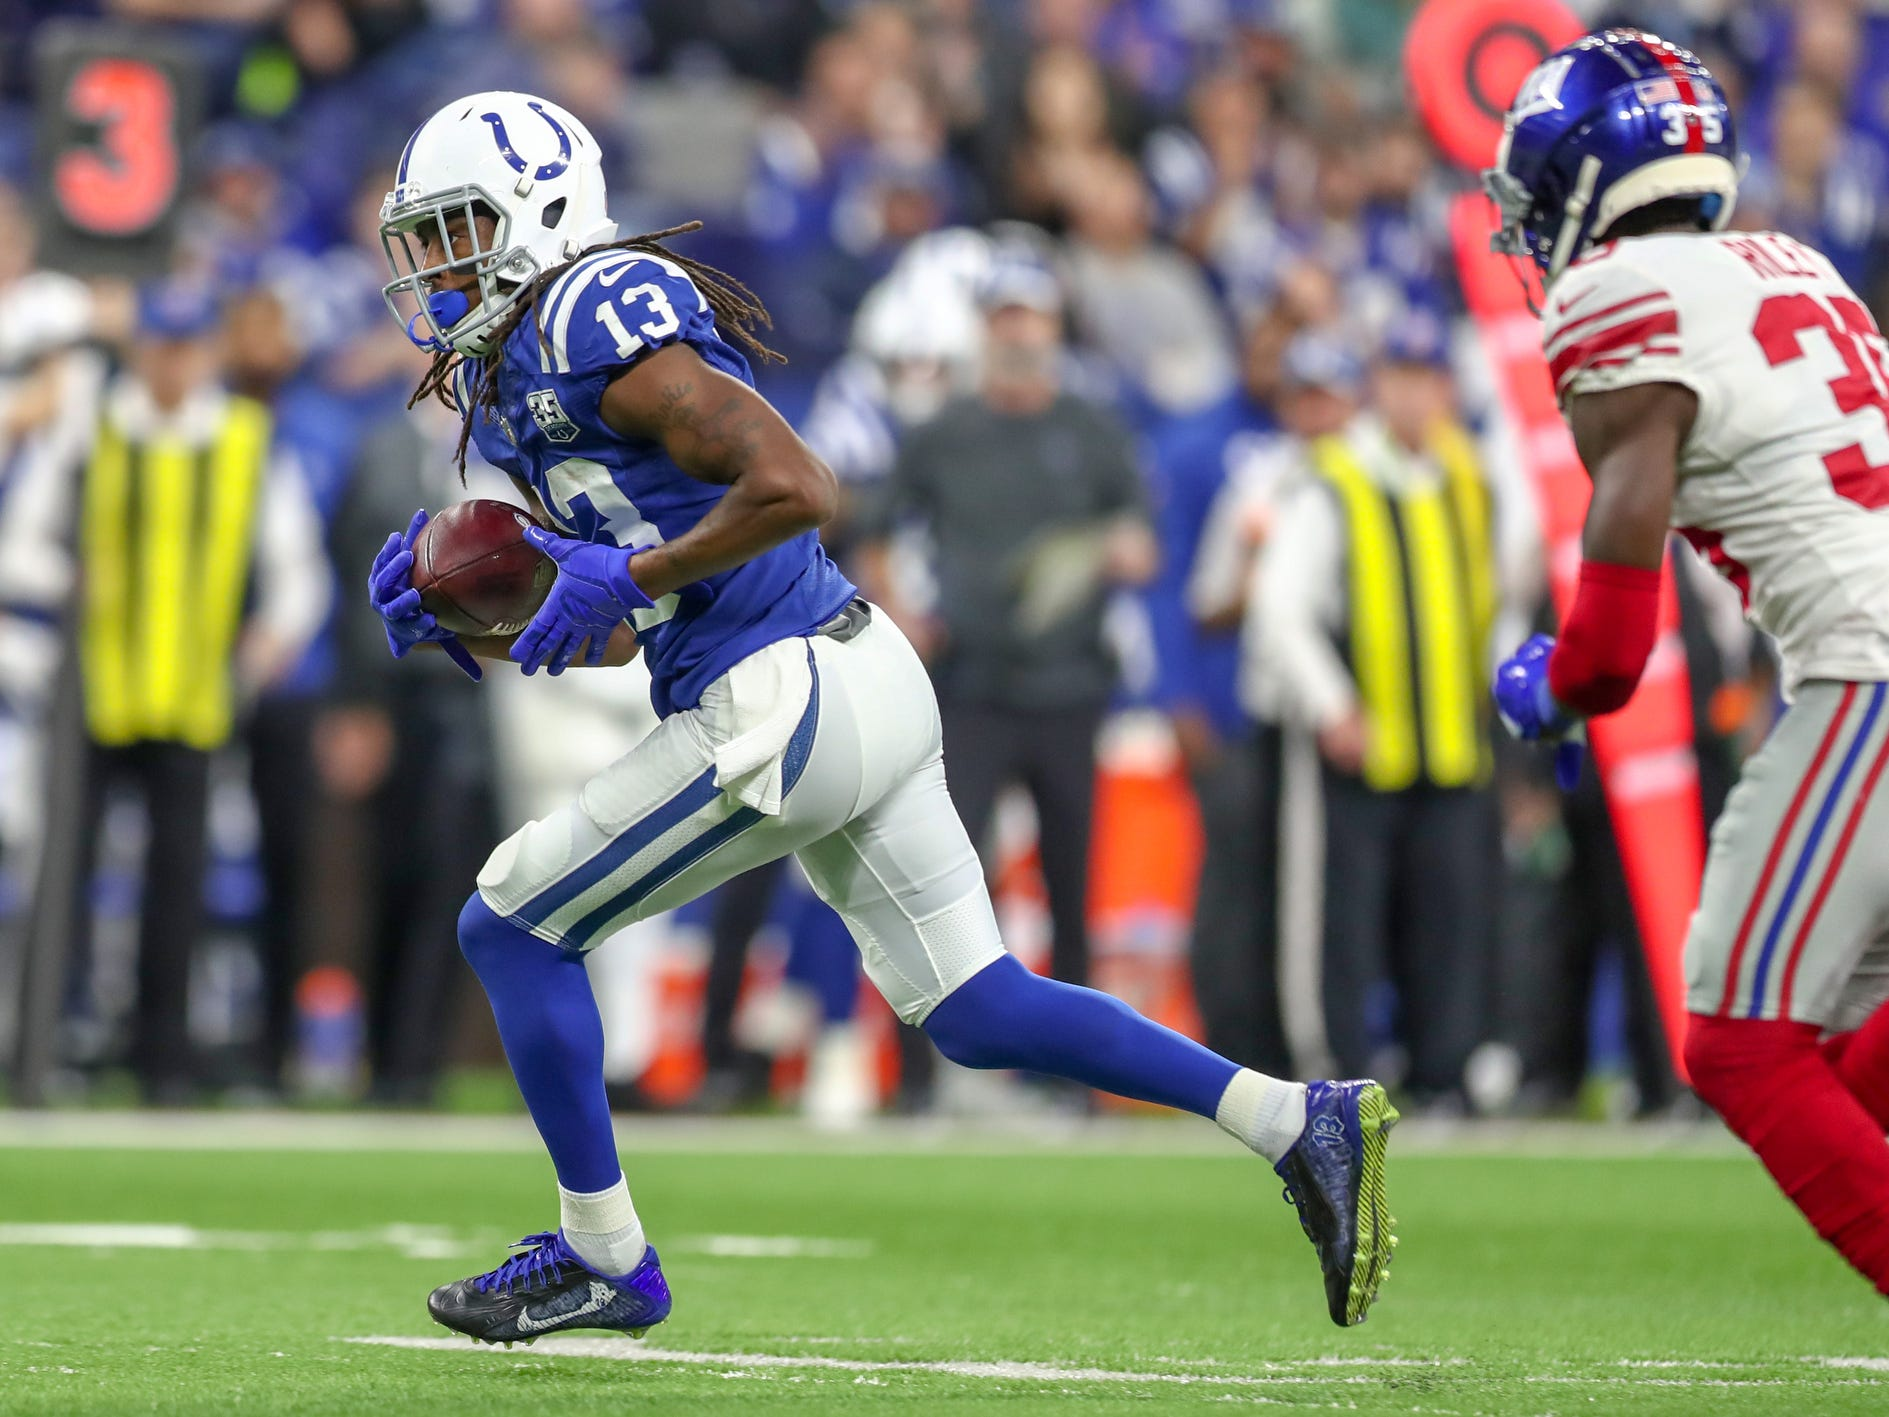 Indianapolis Colts wide receiver T.Y. Hilton (13) takes a pass downfield for the first down late in the game against the New York Giants at Lucas Oil Stadium in Indianapolis on Sunday, Dec. 23, 2018.